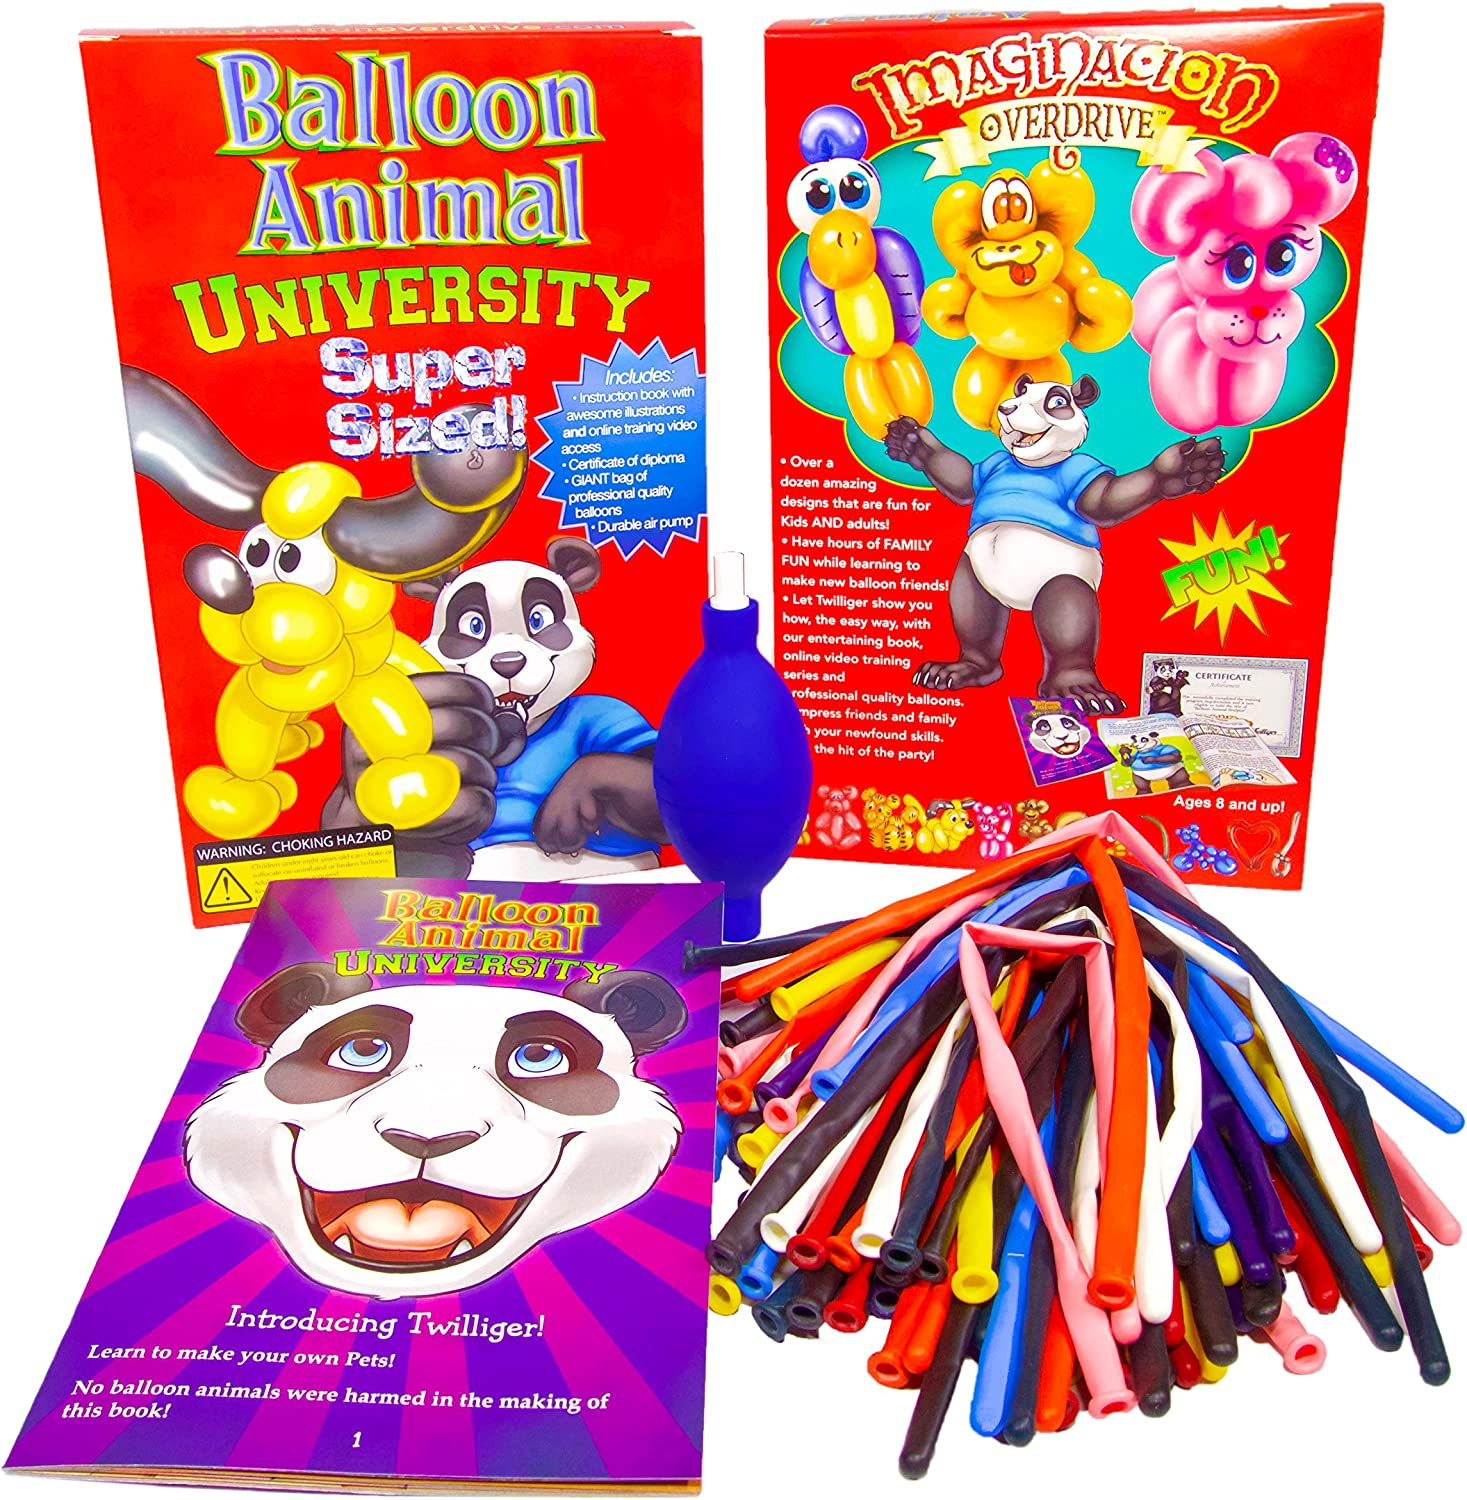 Balloon Animal University SUPERSIZED Kit with Qualatex 50 Count Traditional Assortment Balloons, Air Pump, Book, and Online Video Training Series. Learn to Make Balloon Animals Starter Kit